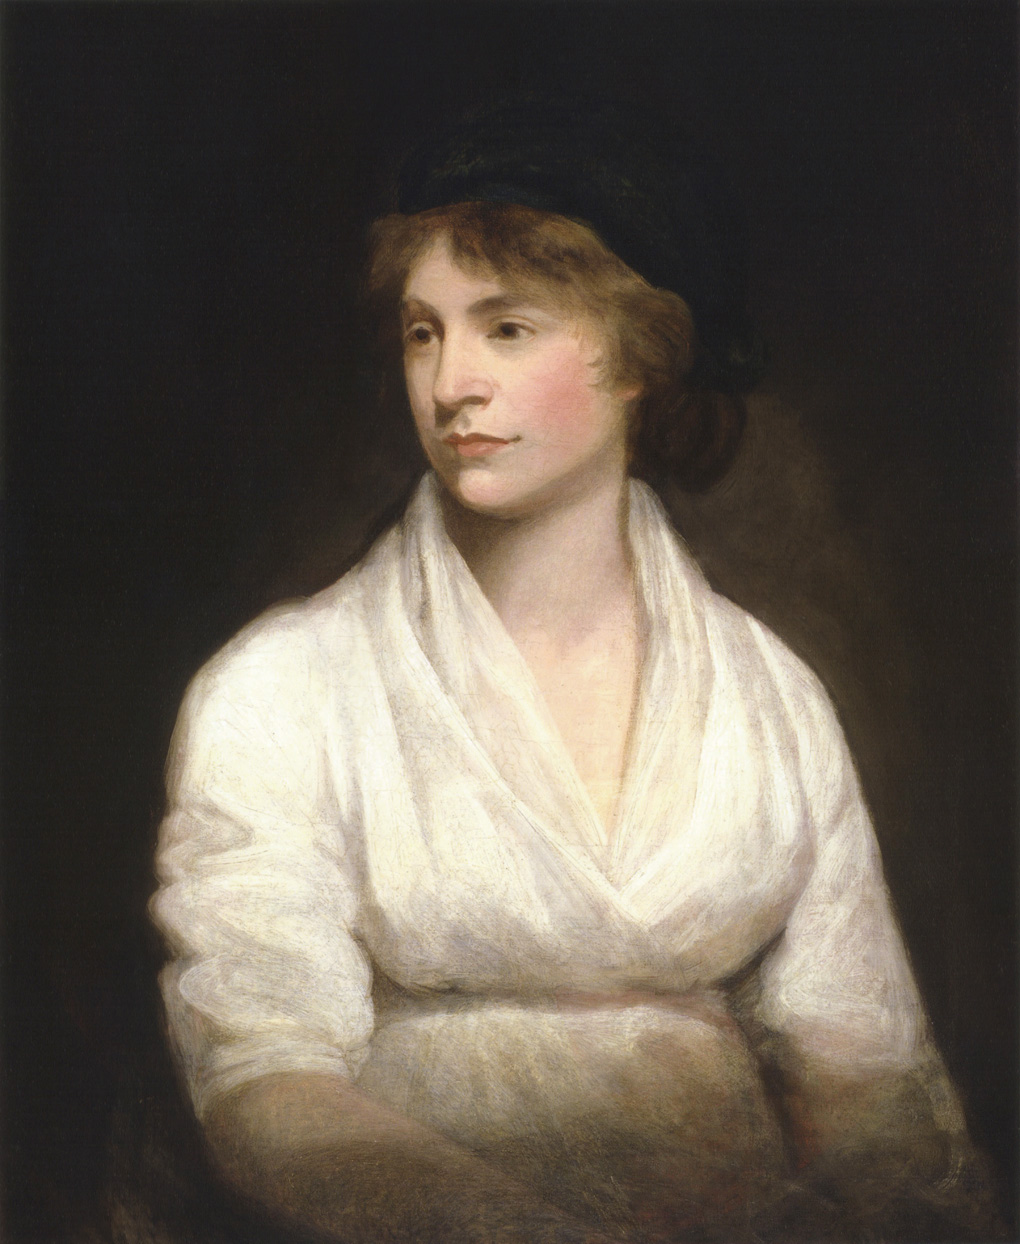 mary wollstonecraft essay on feminism